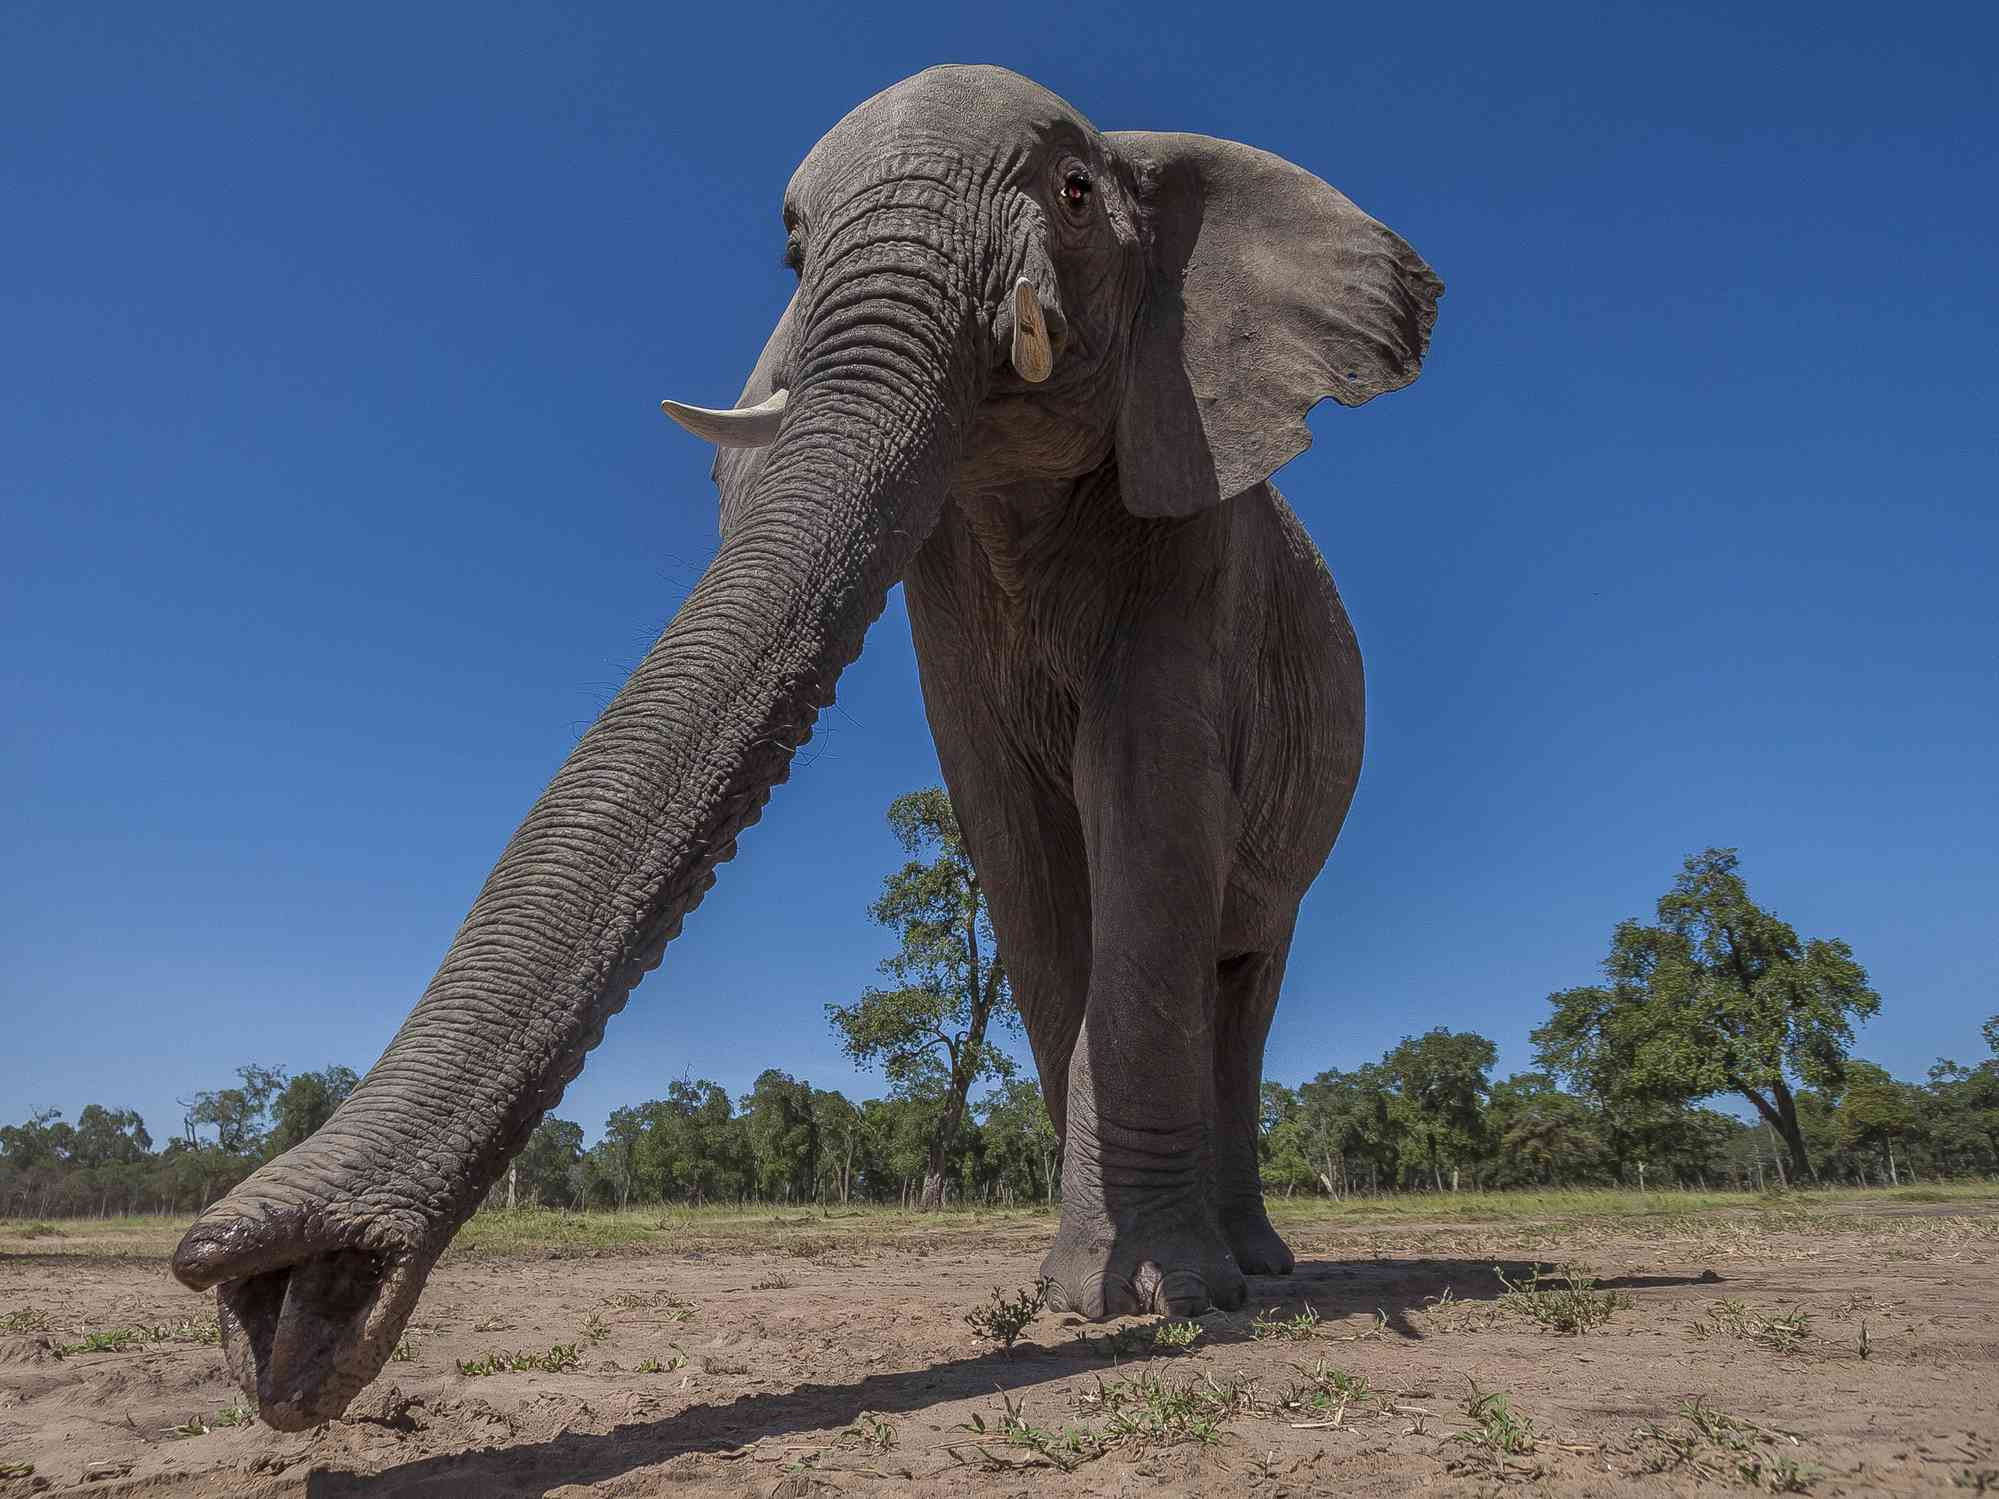 An elephant with its trunk outstretched walks on a path of dirt with green trees behind it.